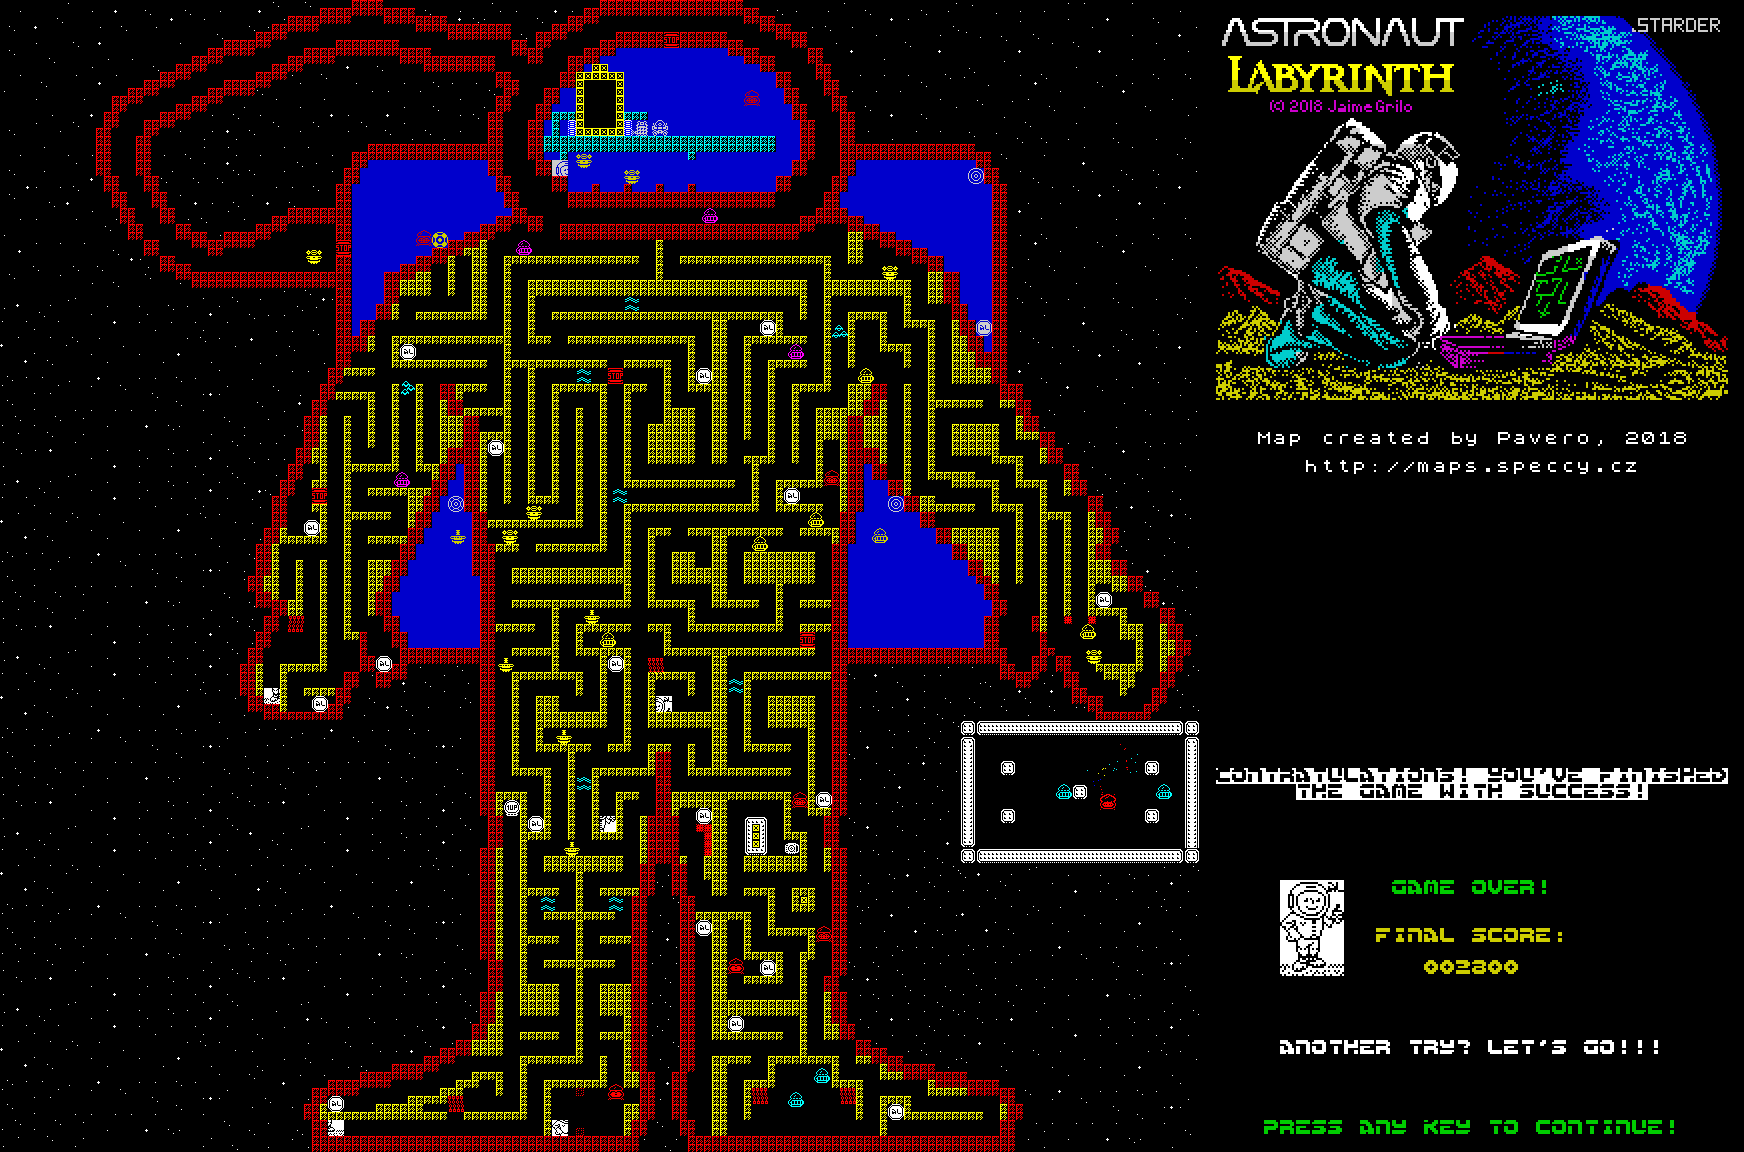 Astronaut Labyrinth - The Map